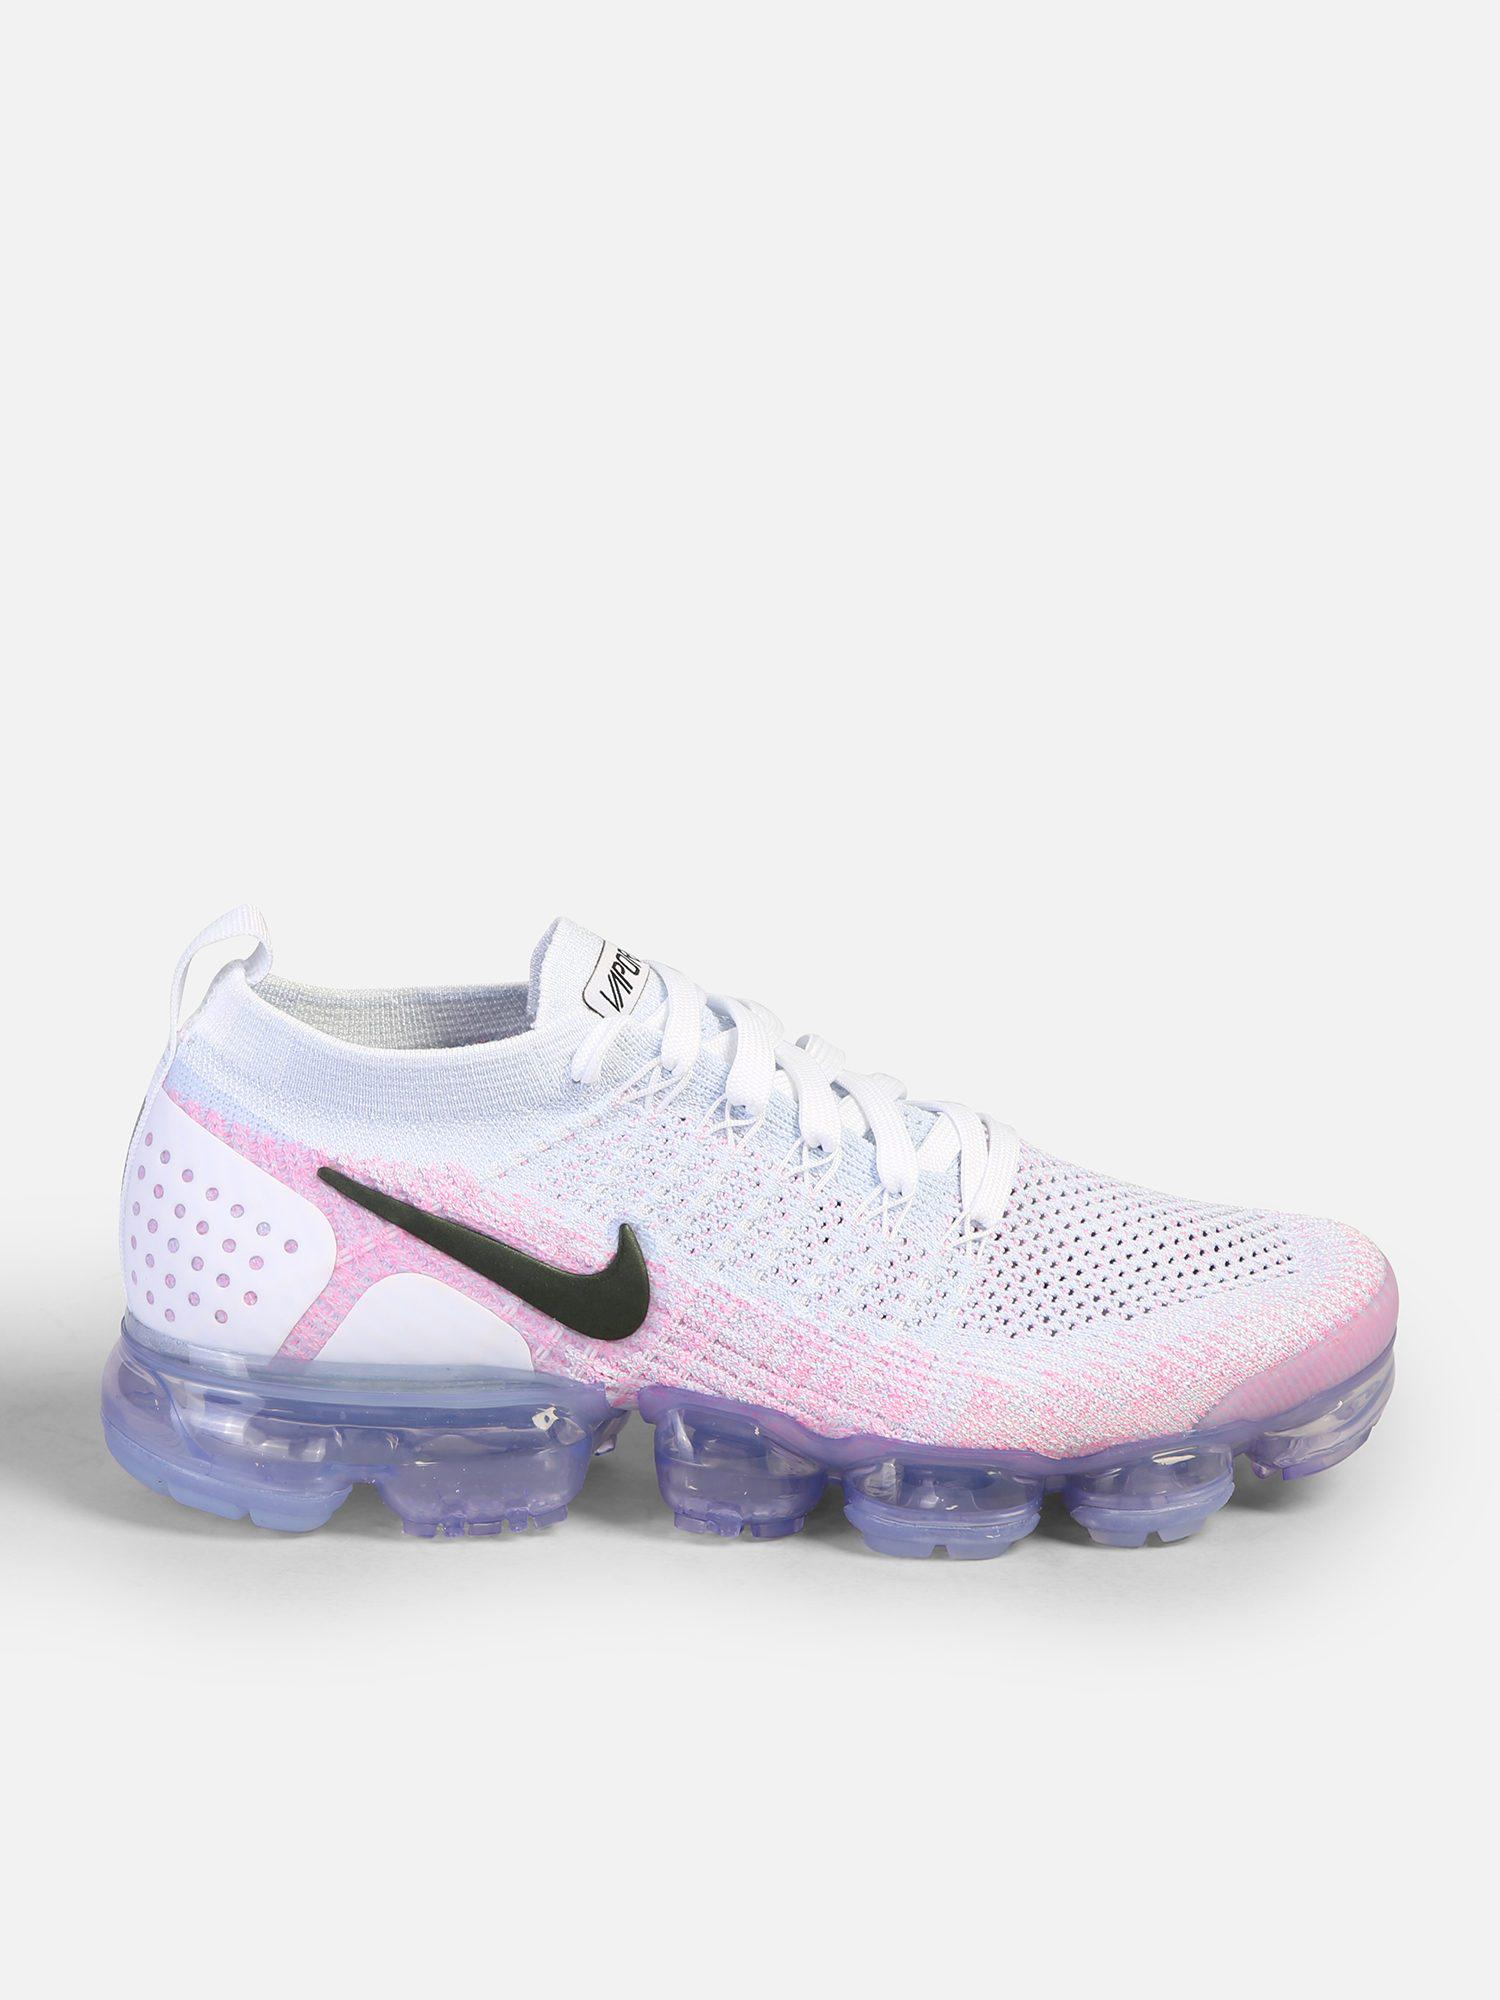 be1ab1c86c76 Nike Air Vapormax Flyknit 2 Sneakers for Men - Lyst